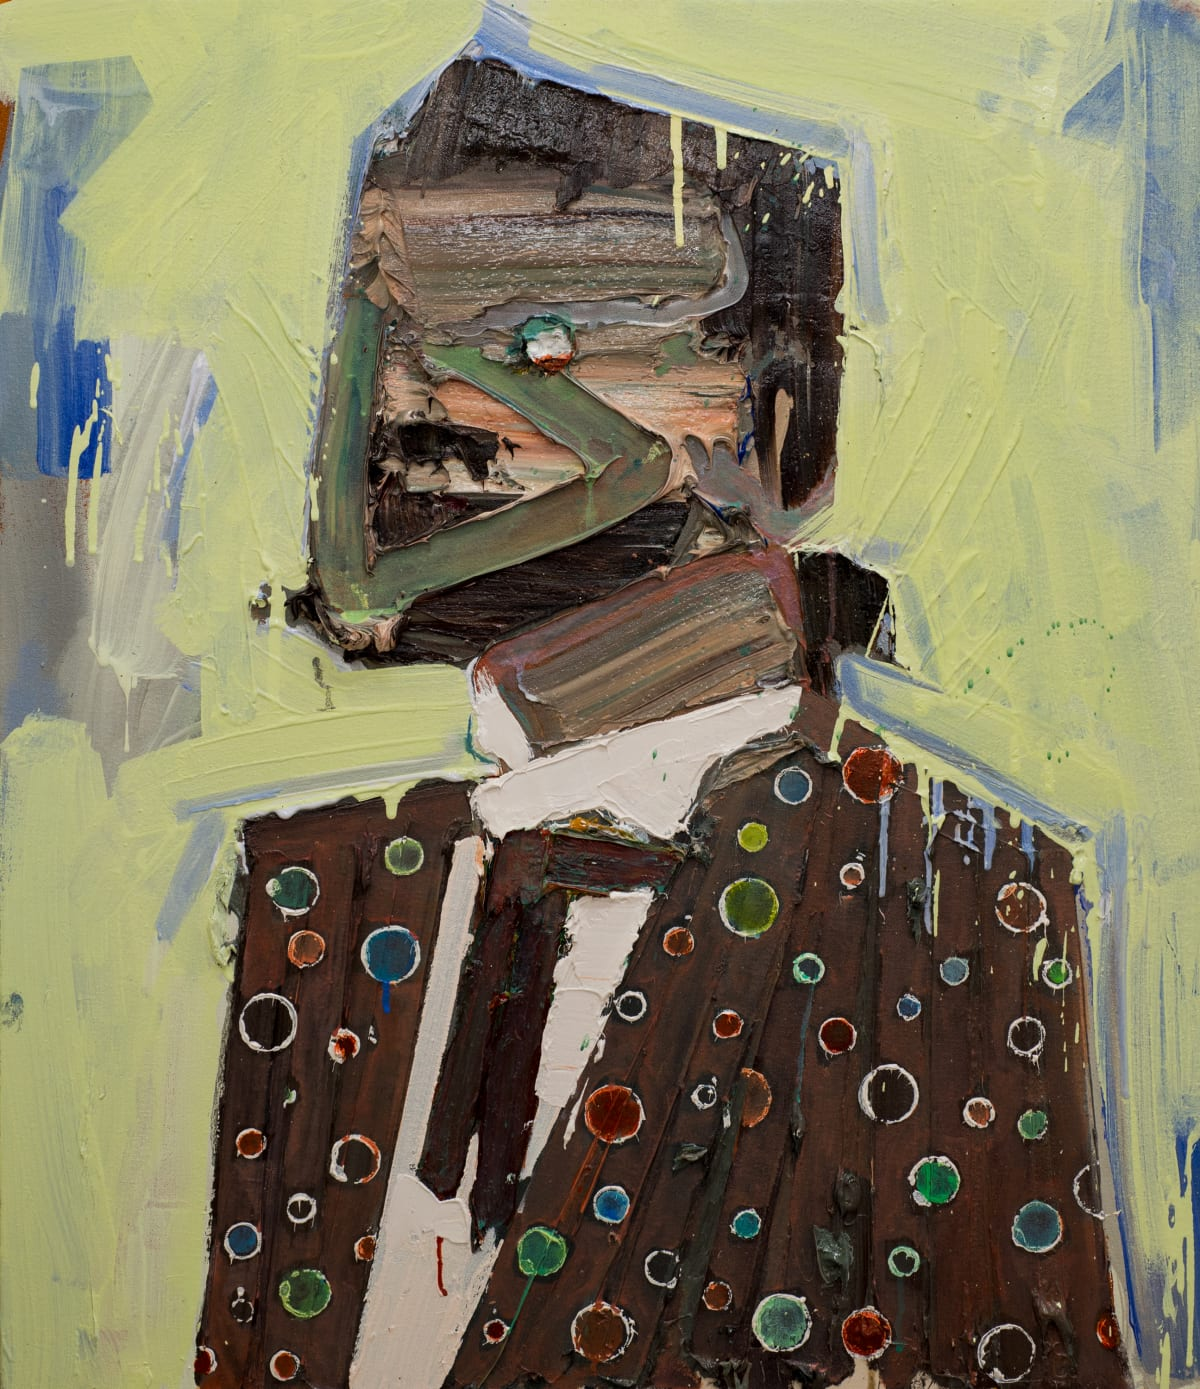 Toby Raine Brandon Flowers with Moustache and Fancy Jacket (Sam's Town), 2017 Oil on canvas 27.8 x 23.8 in 70.5 x 60.5 cm